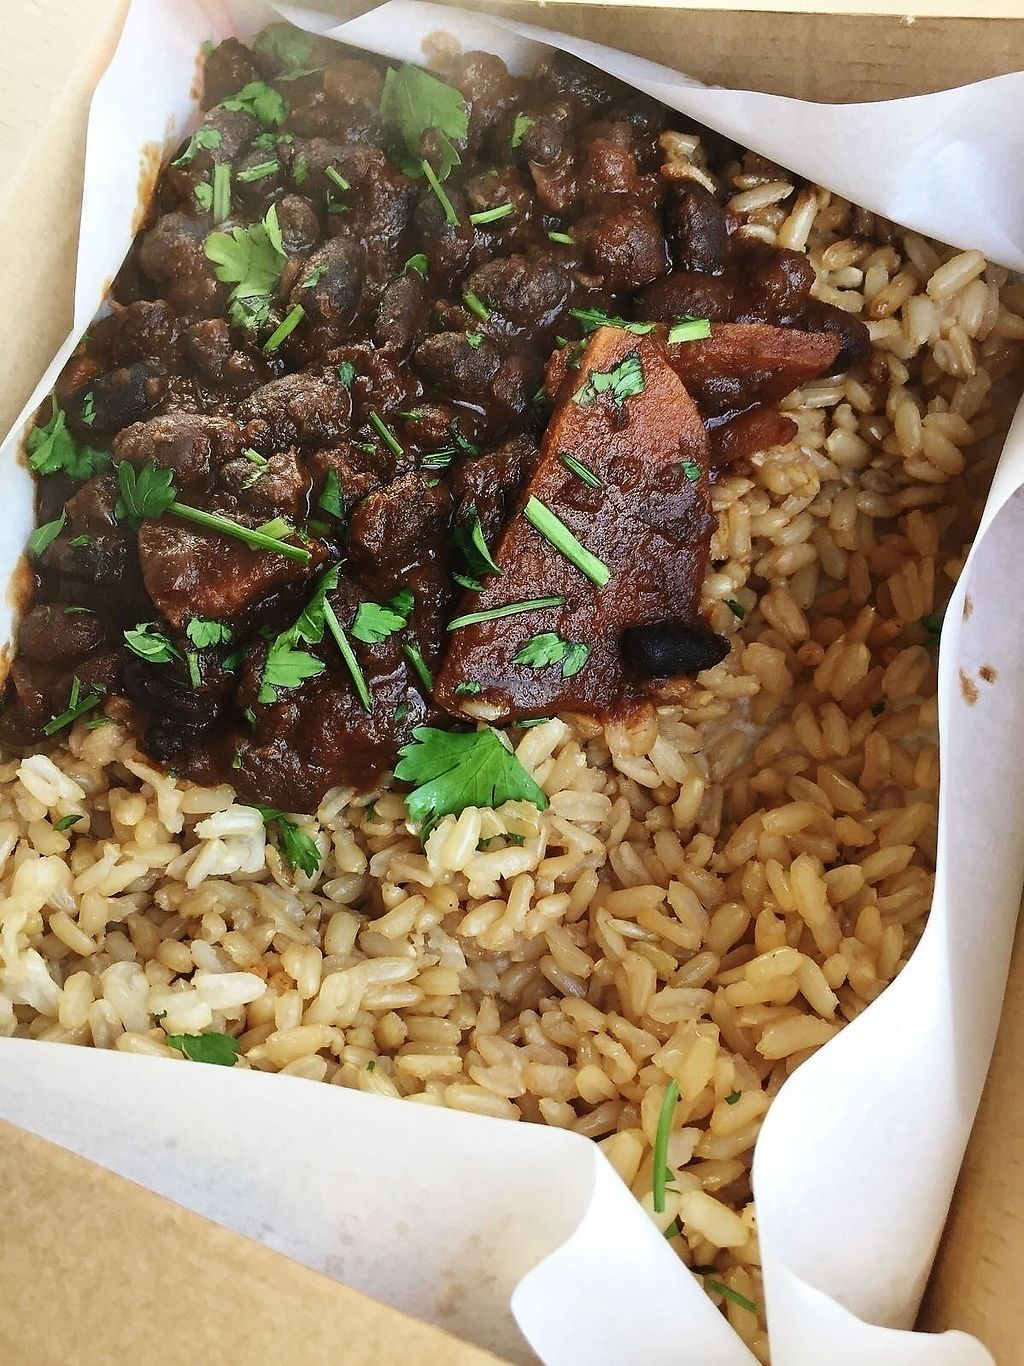 """Photo of LEON  by <a href=""""/members/profile/TARAMCDONALD"""">TARAMCDONALD</a> <br/>Black beans and rice on the go!! <br/> November 30, 2017  - <a href='/contact/abuse/image/97884/330825'>Report</a>"""